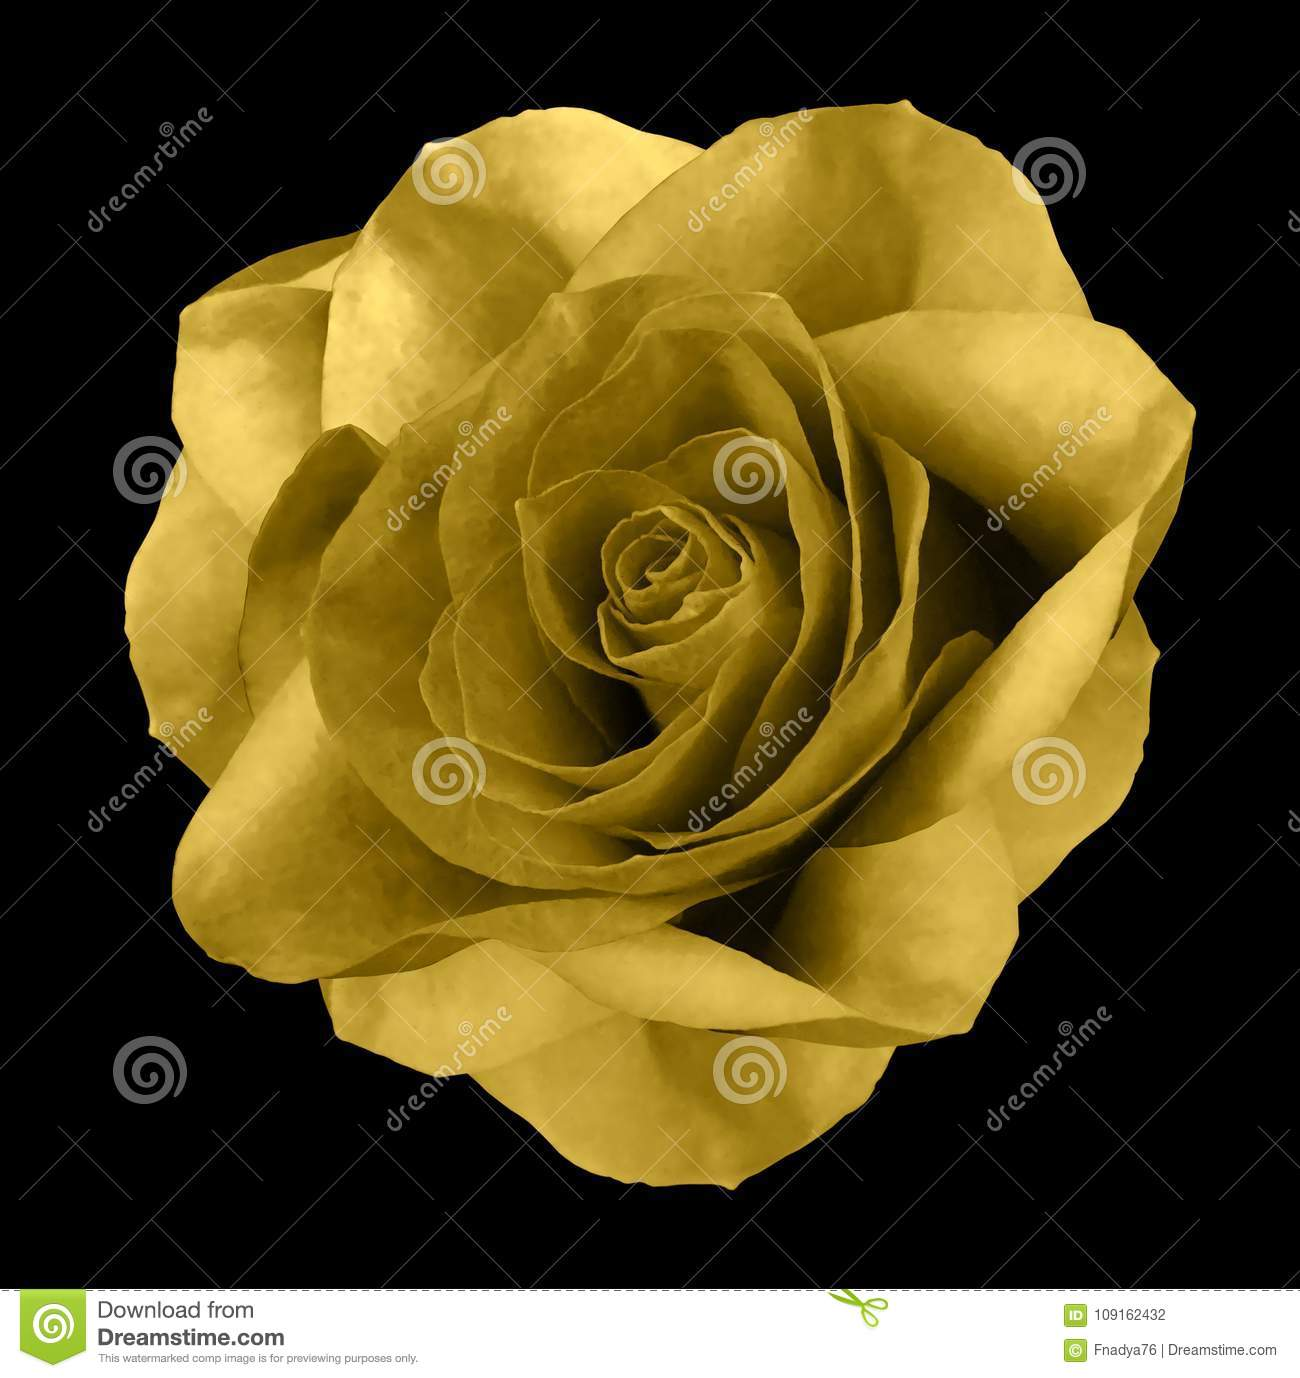 Rose Yellow Flower On The Black Isolated Background With Clipping